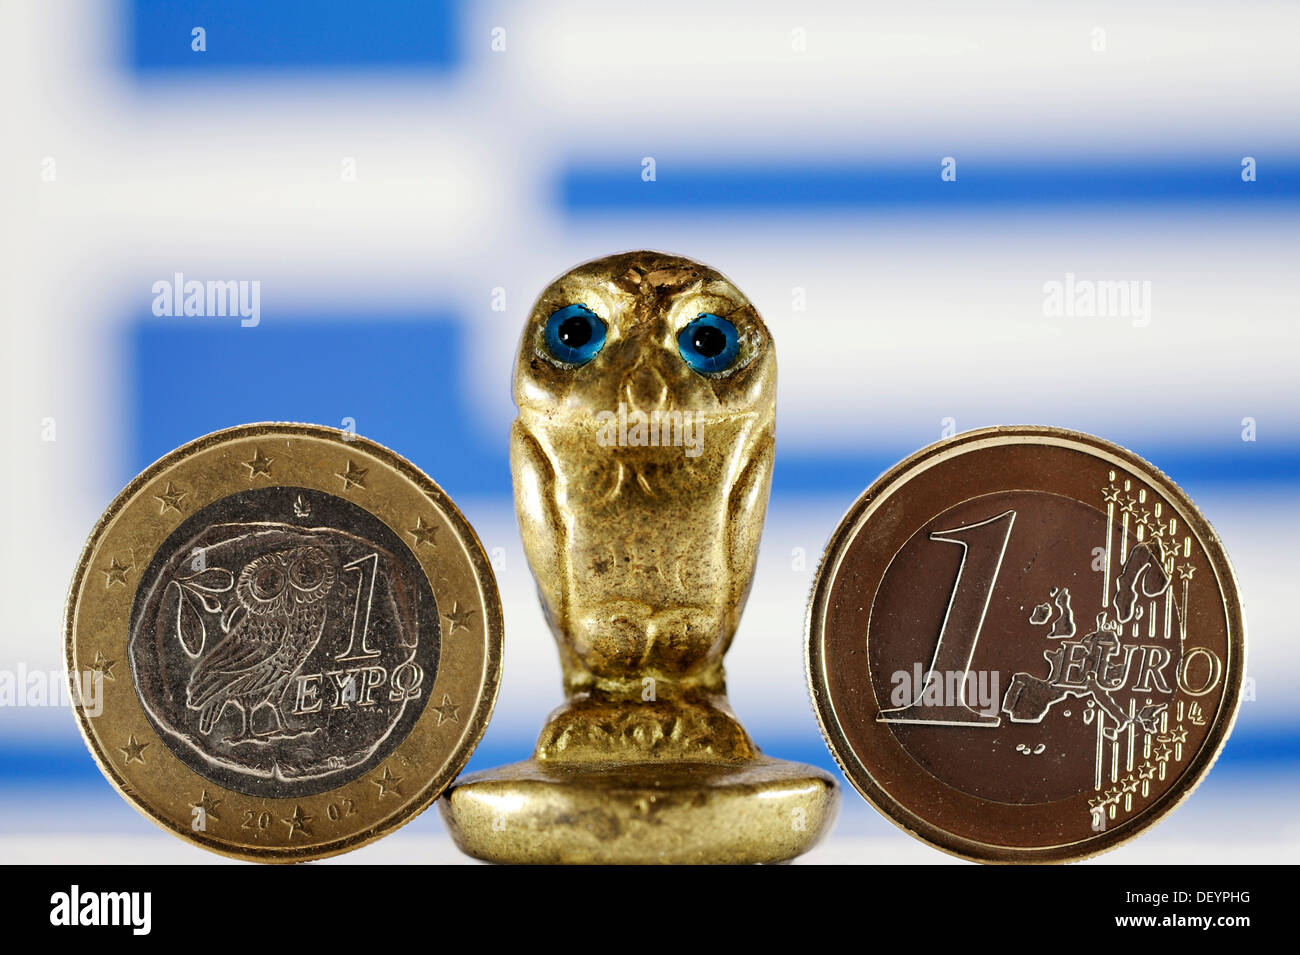 Greek euro, owl and Greek flag, symbolic image for the imminent national bankruptcy of Greece - Stock Image